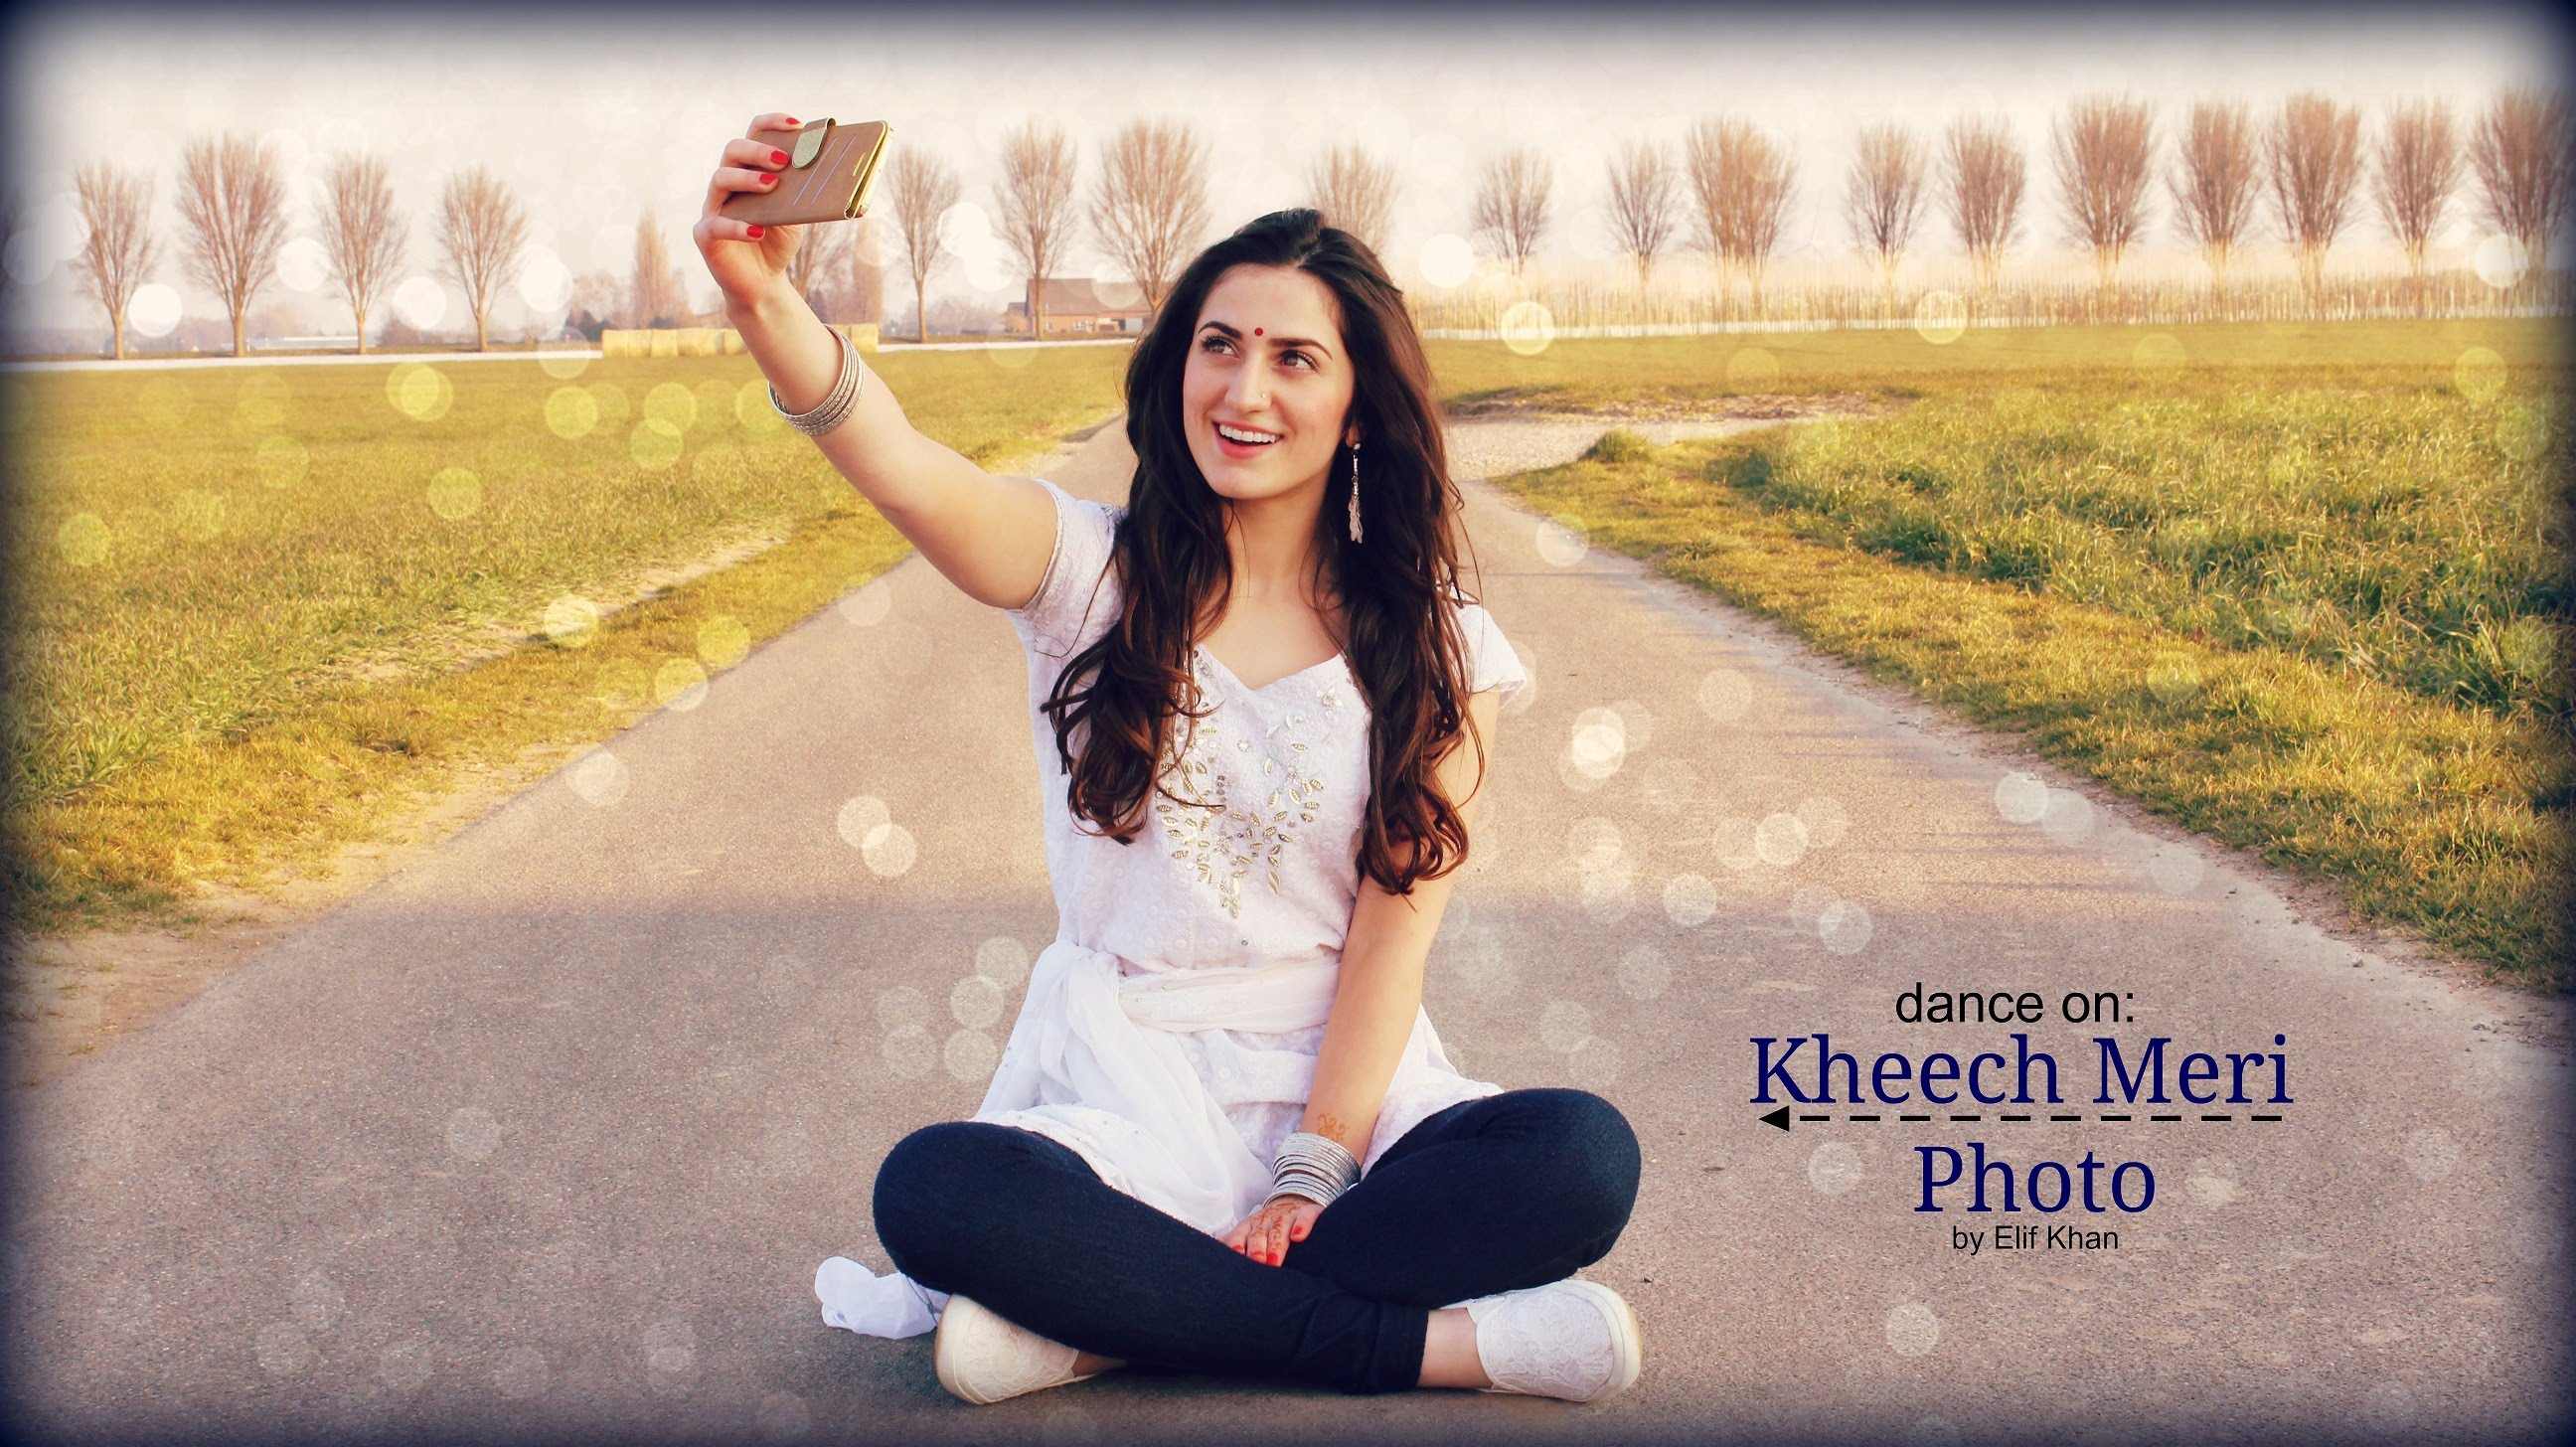 Dance On: Kheech Meri Photo - YouTube